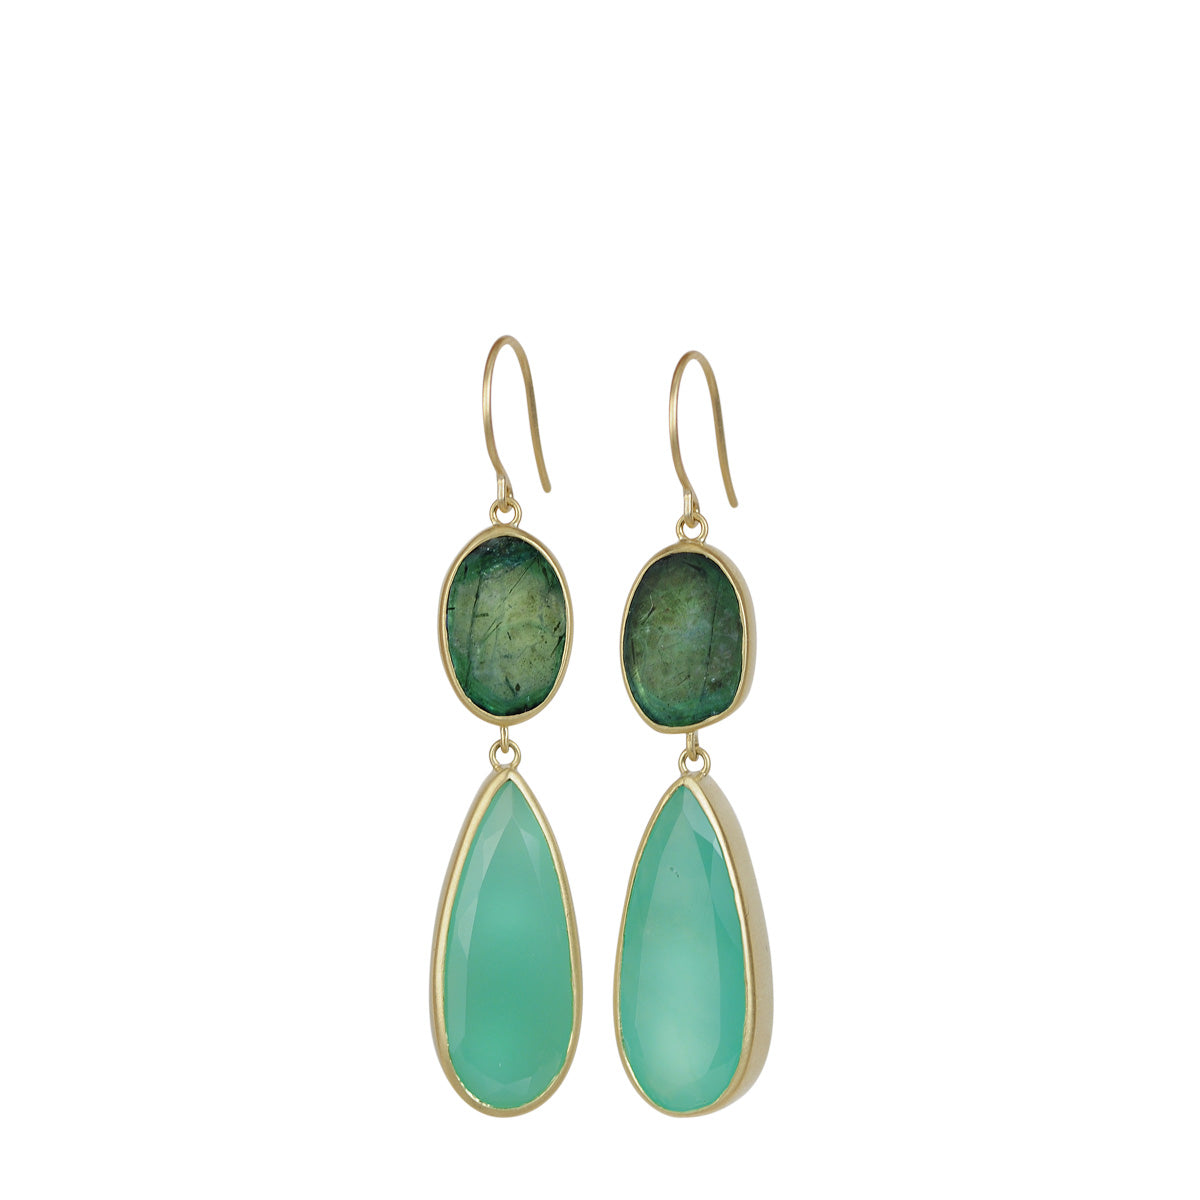 18K Gold Emerald and Chrysoprase Drop Earrings